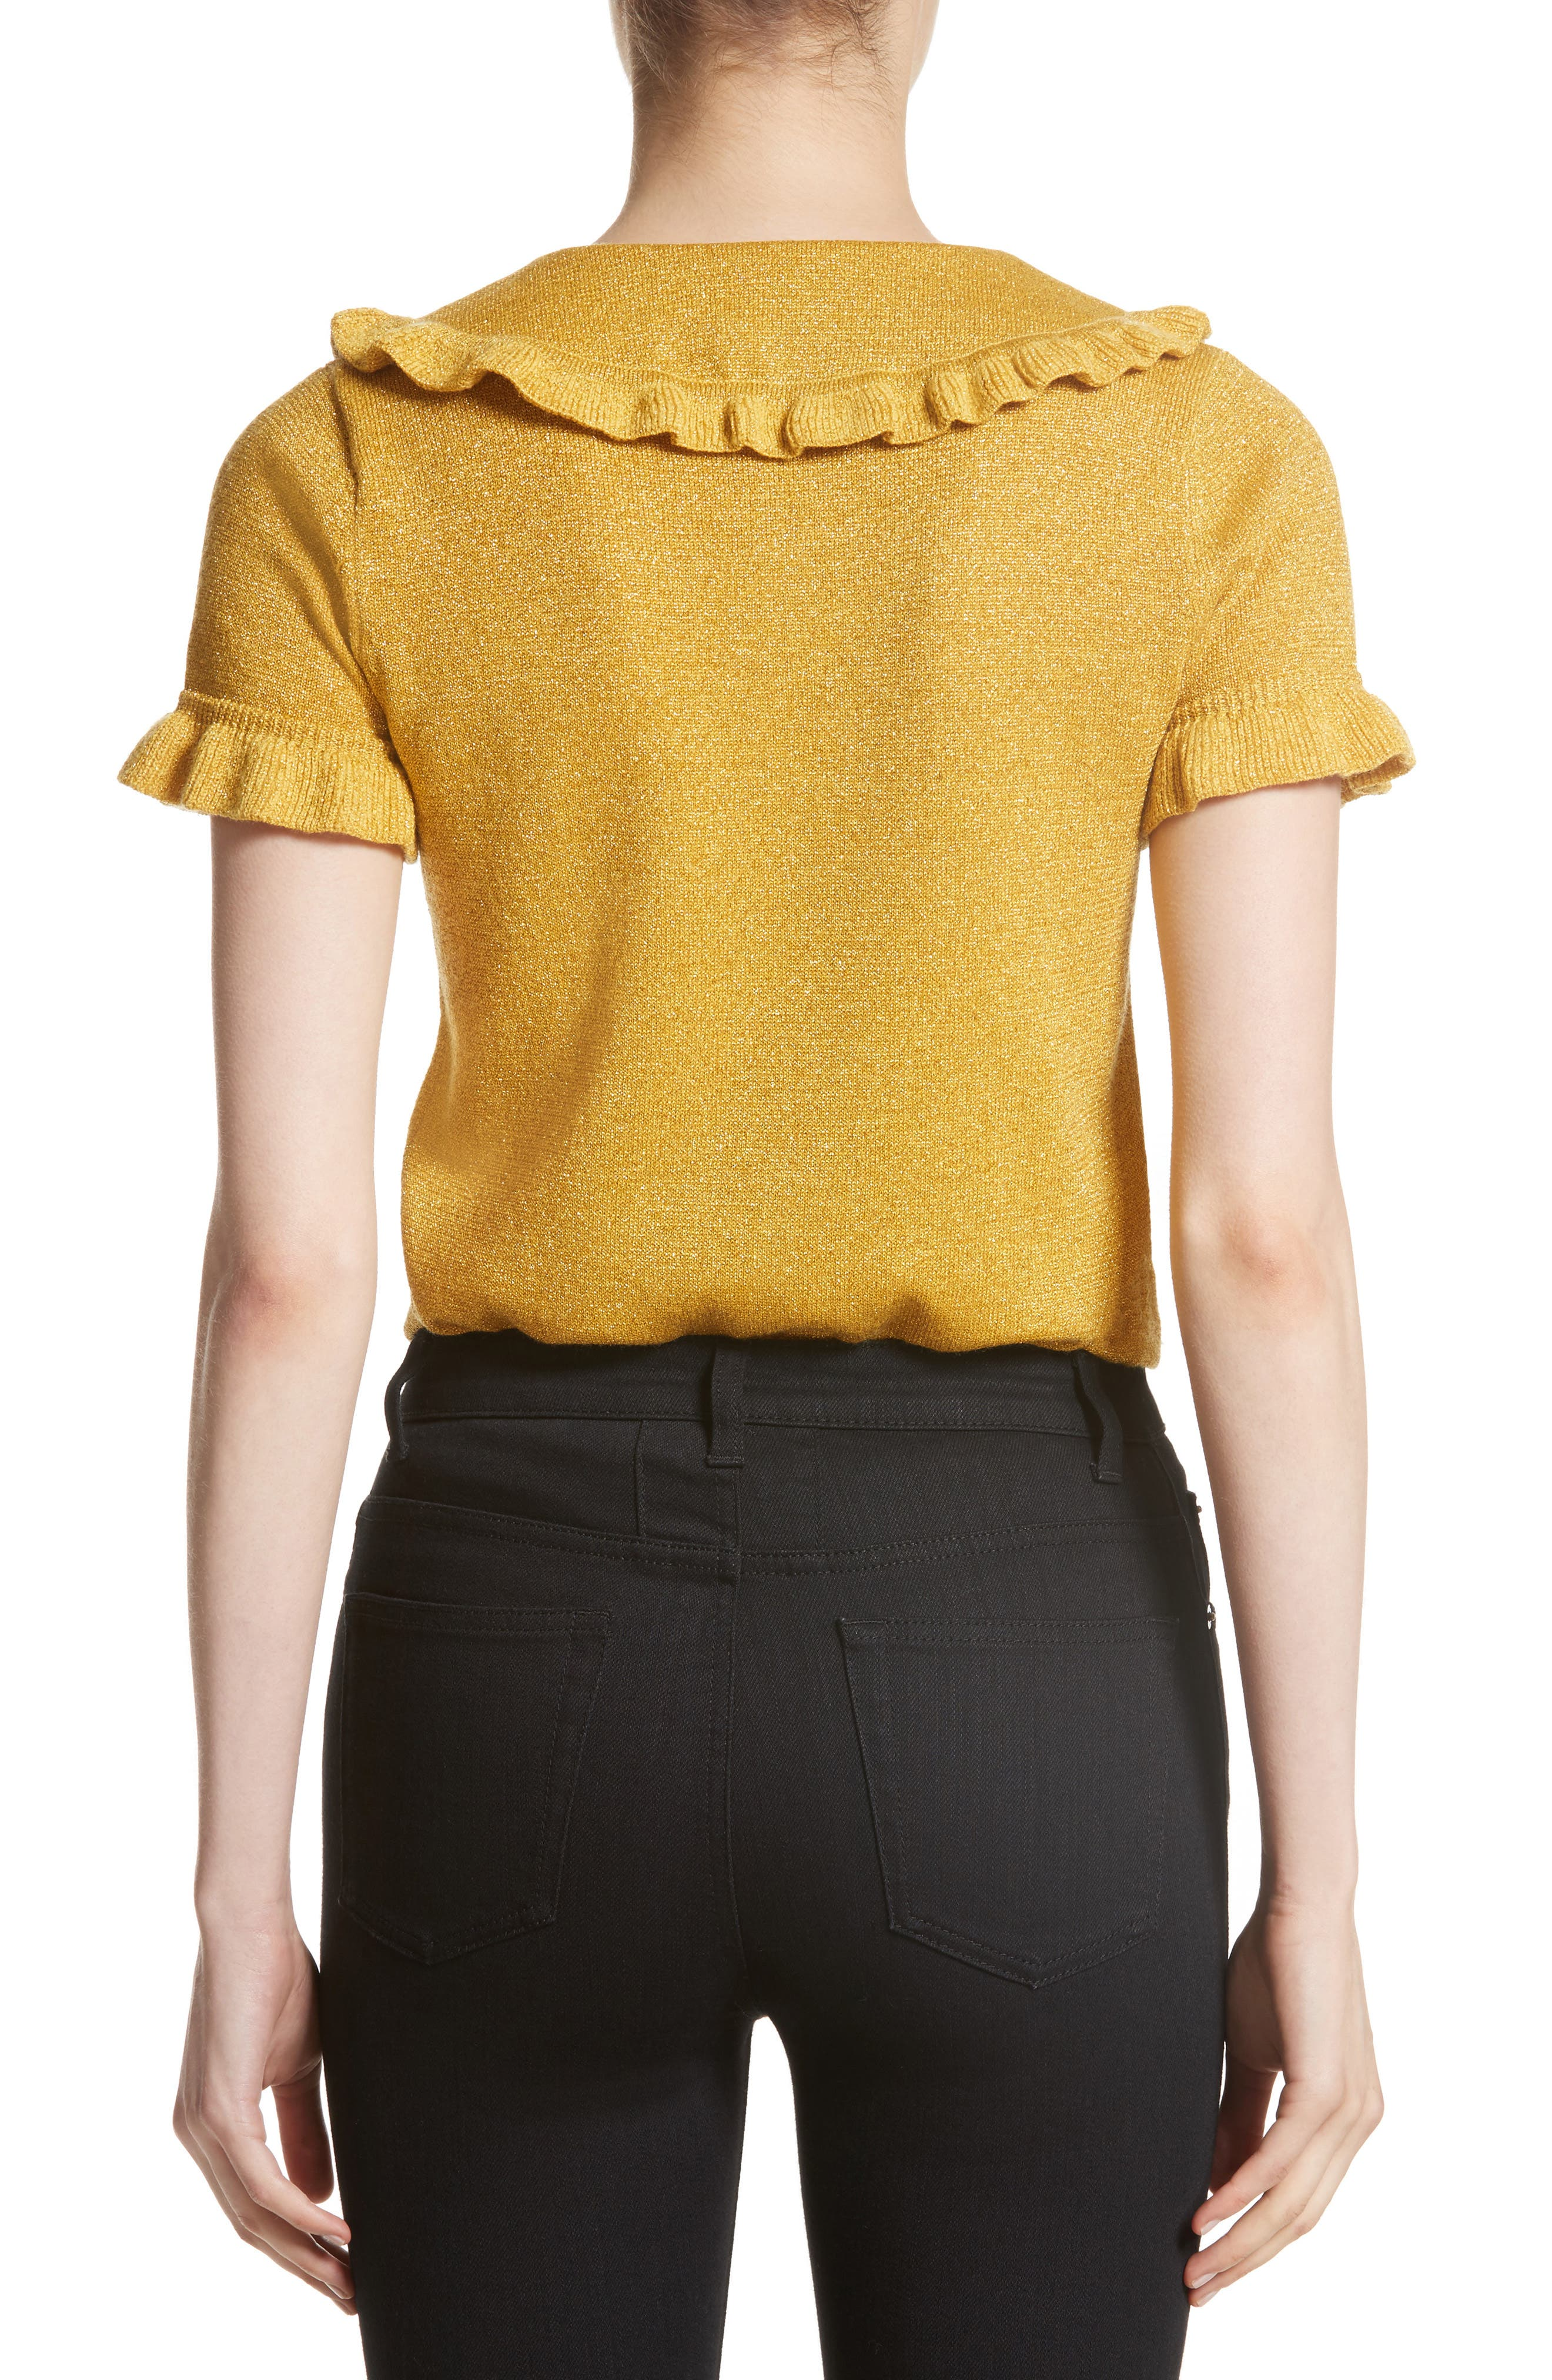 Campbell Frill Metallic Sweater,                             Alternate thumbnail 2, color,                             700